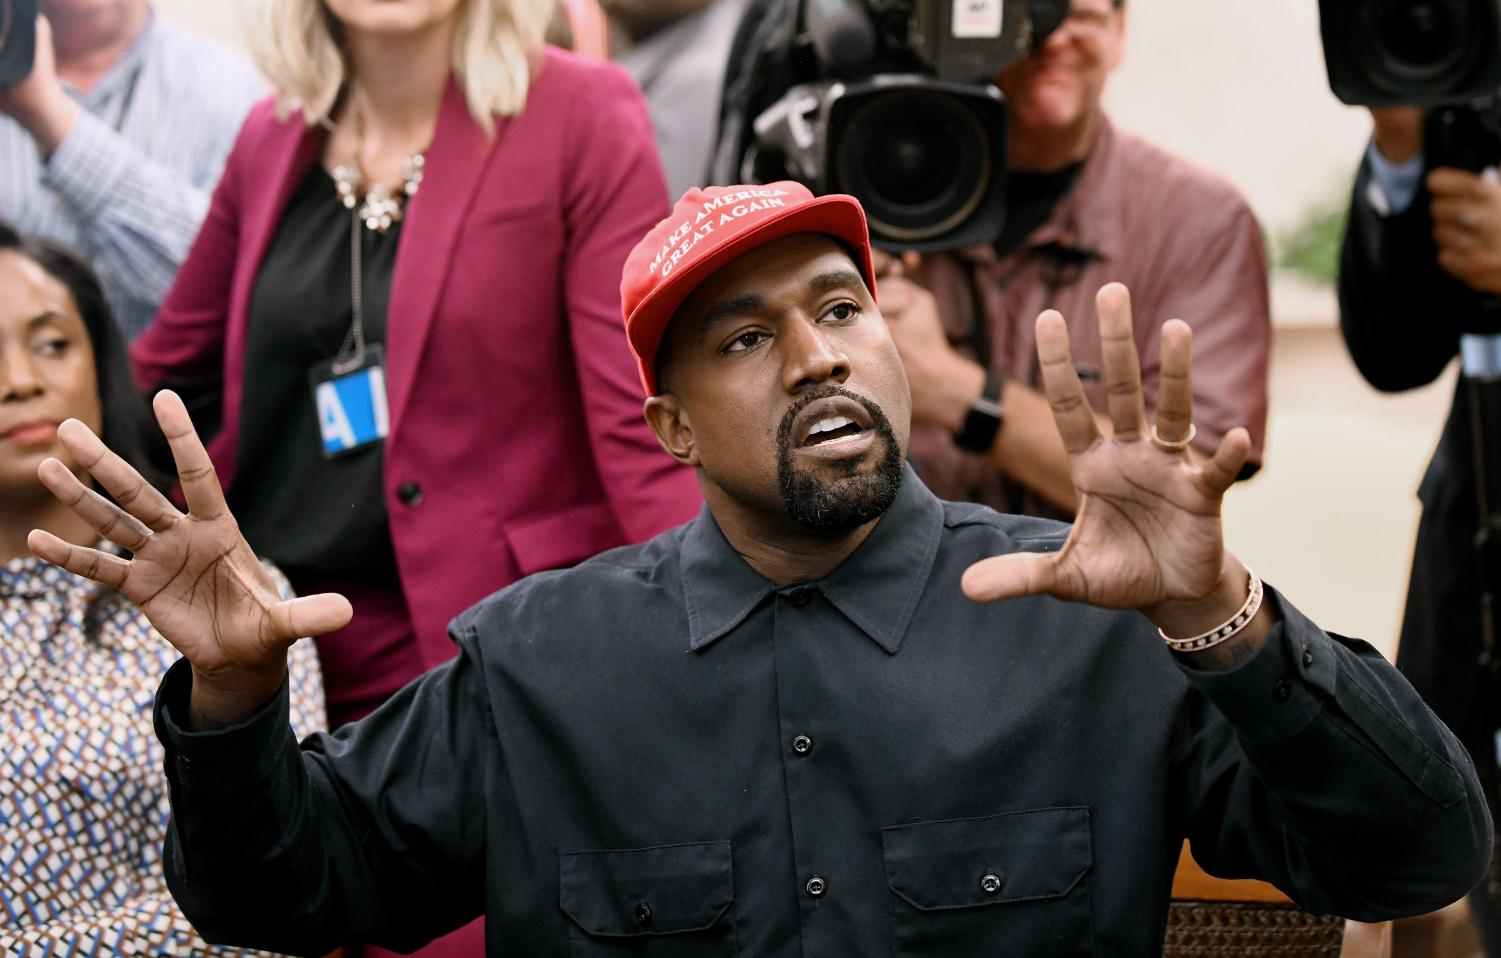 Musical artist Kanye West speaks in the Oval Office of the White House during a meeting with President Donald Trump to discuss criminal justice system and prison reform on Thursday, Oct. 11, 2018 in Washington, D.C.